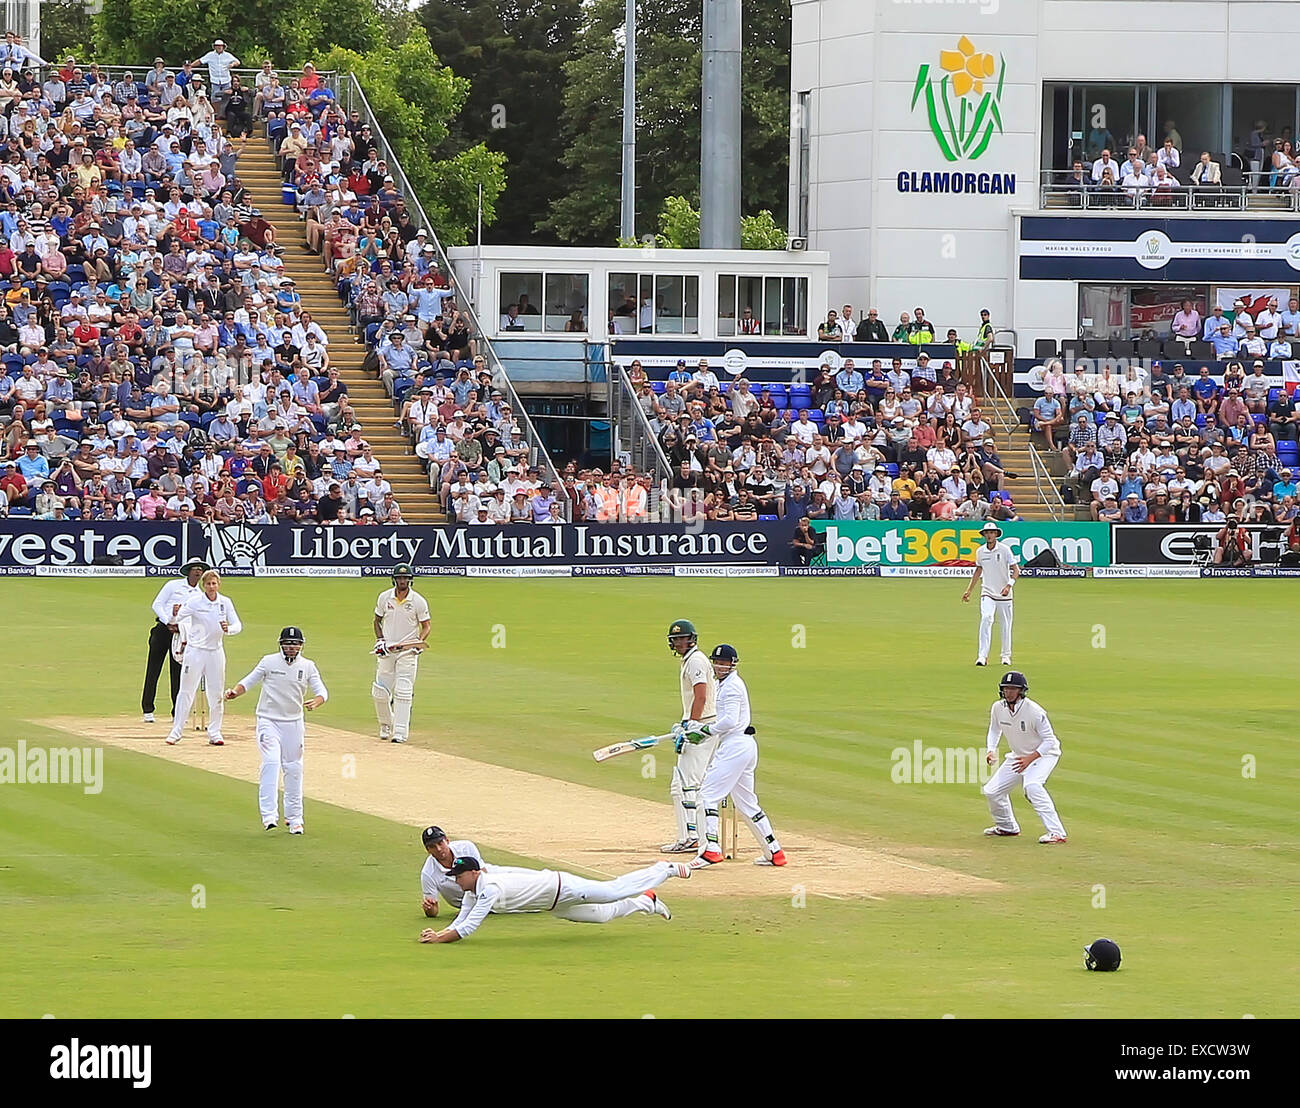 Cardiff, Wales, UK. 11th July, 2015. Joe Root and Alastair Cook look on as Adam Lyth catches the ball to dismiss - Stock Image